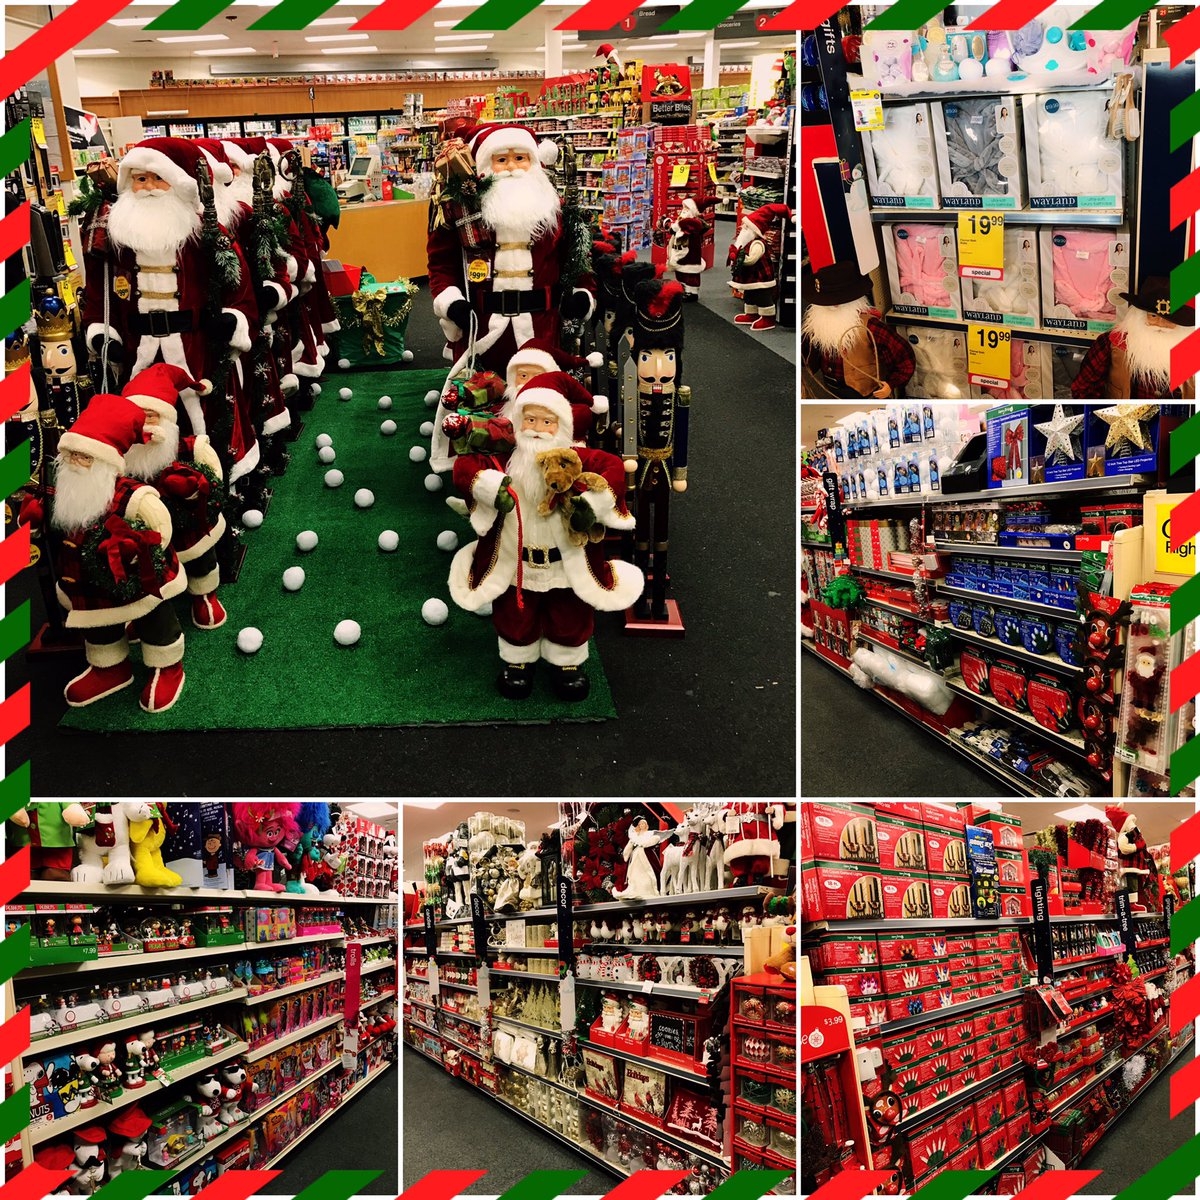 zeleena mussaleen on twitter looking for christmas decorations or holiday gifts stop by cvs 549 friendlystaff service teamwork christmas